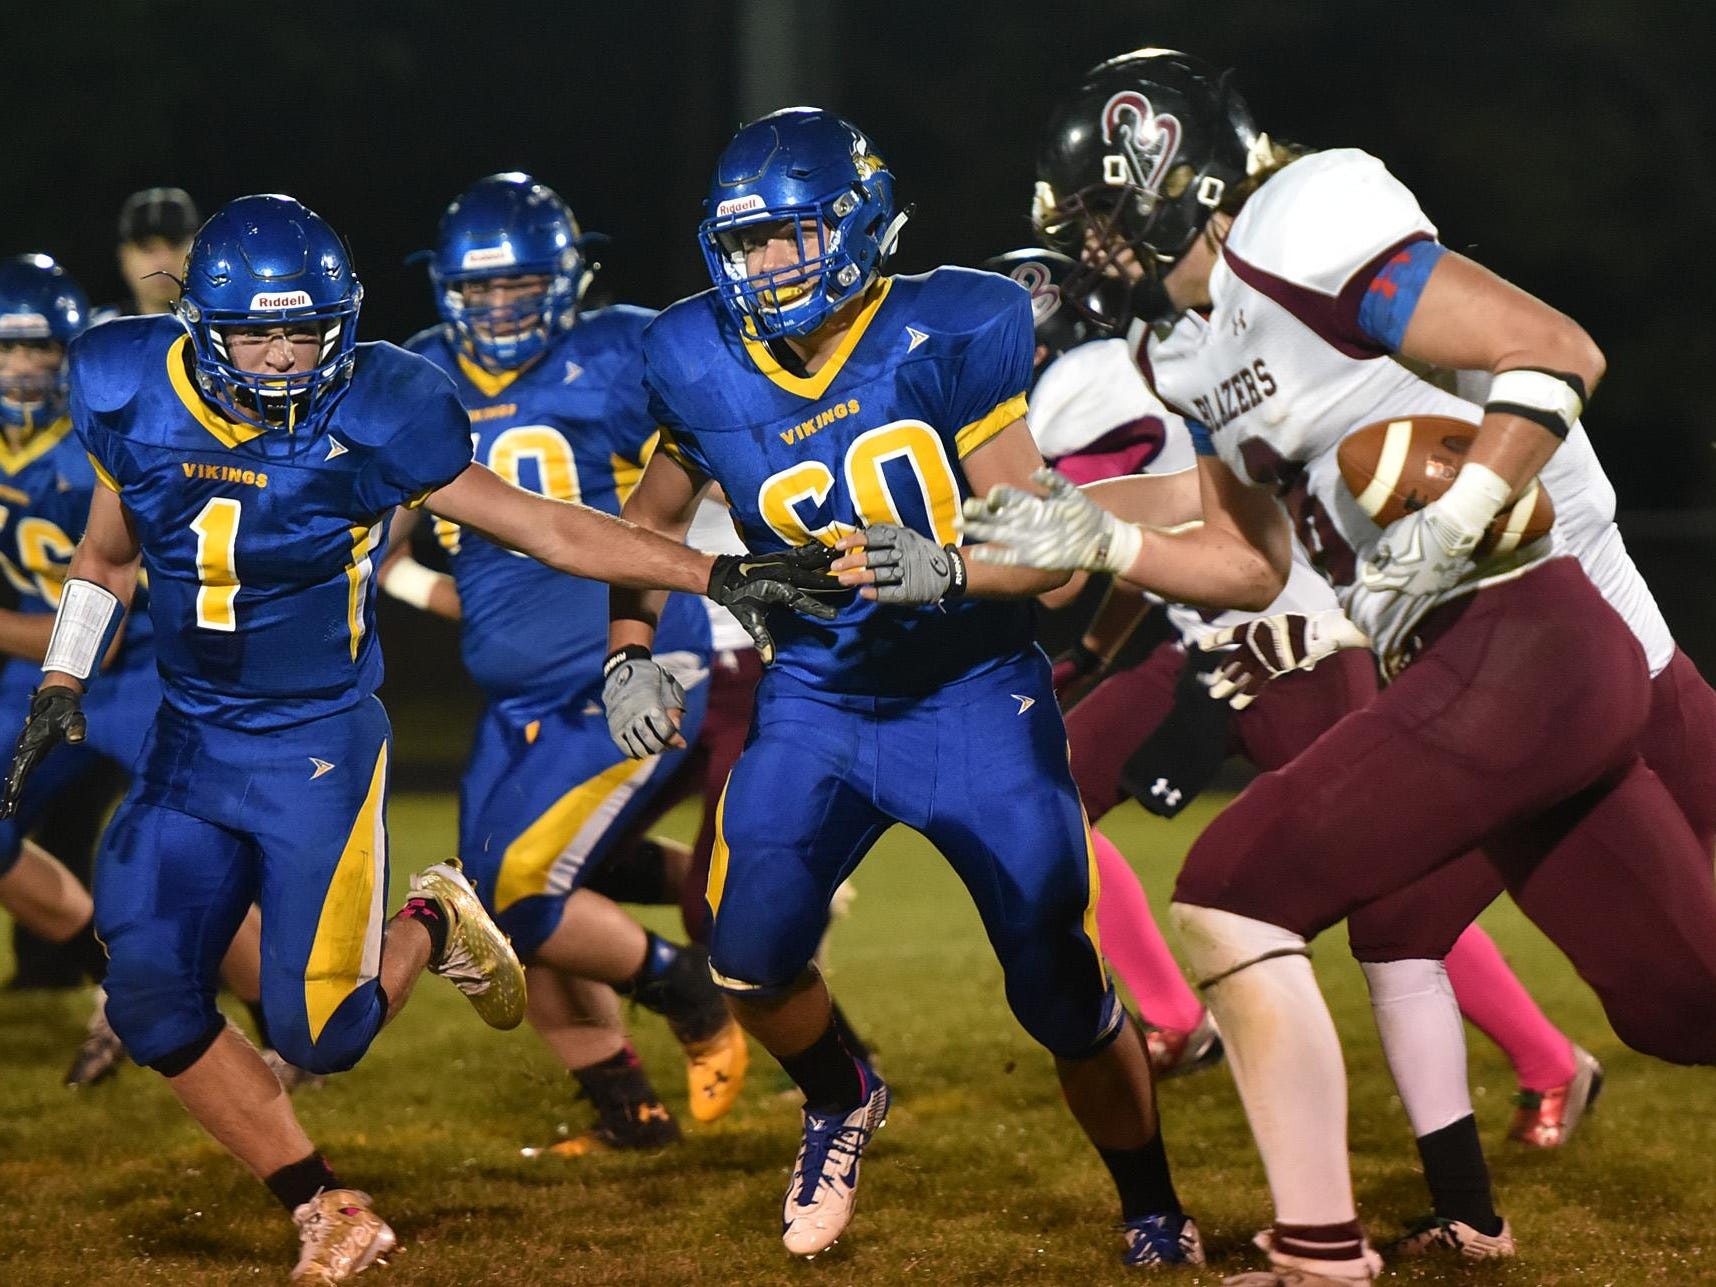 Gibraltar's Logan Ferry (1) and Nathan Ewaskowitz (60) attempt to get to N.E.W. Lutheran running back Gabe Lloyd during the 8-man football game Friday night. NEW moved to 8-0 with a 42-24 win.